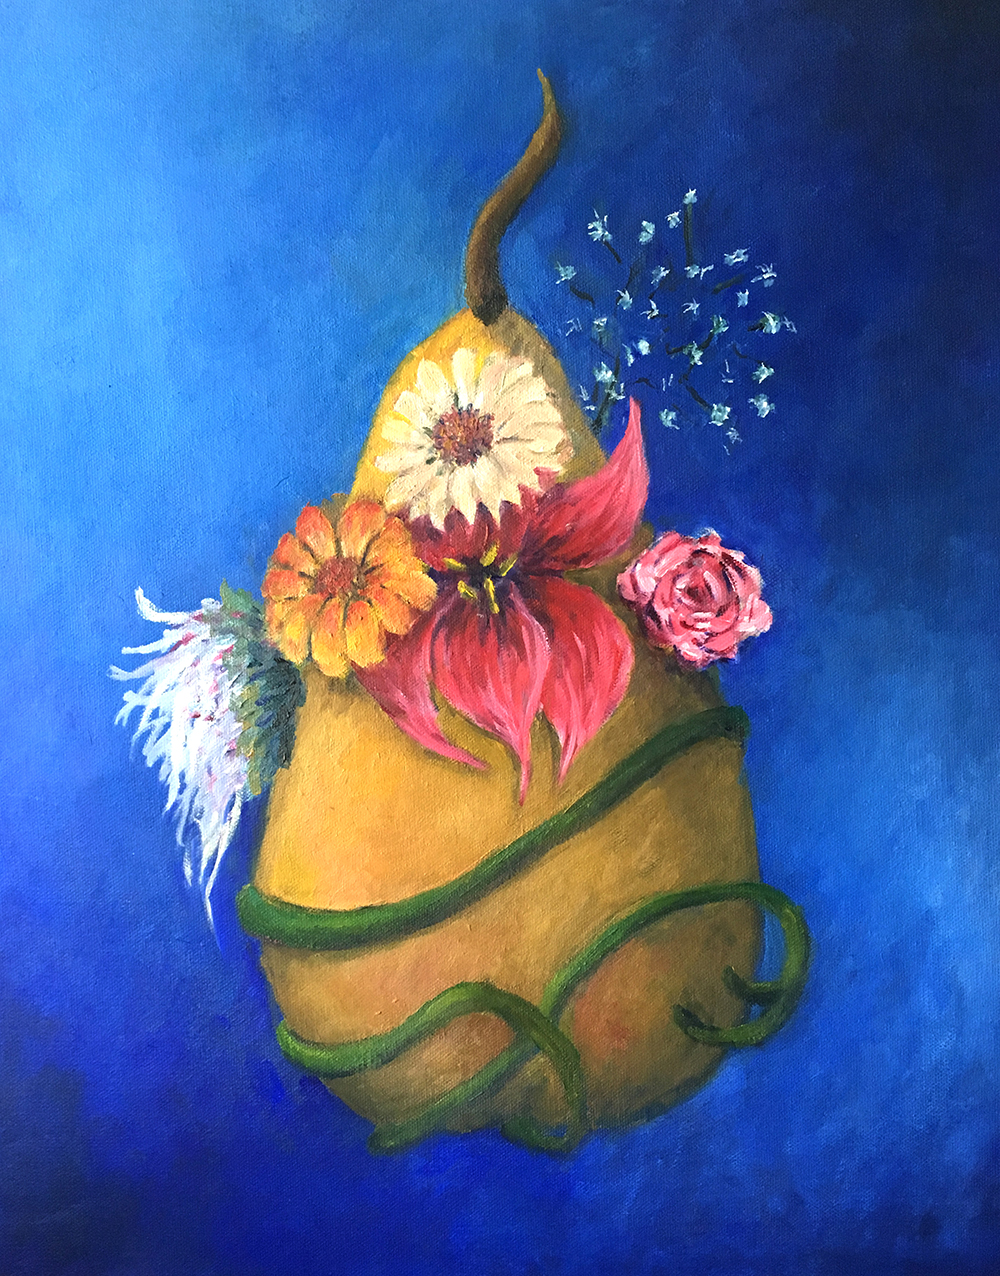 Marie-Louise McHugh Title: Flower Power Size: 20 x 16 Price: $650